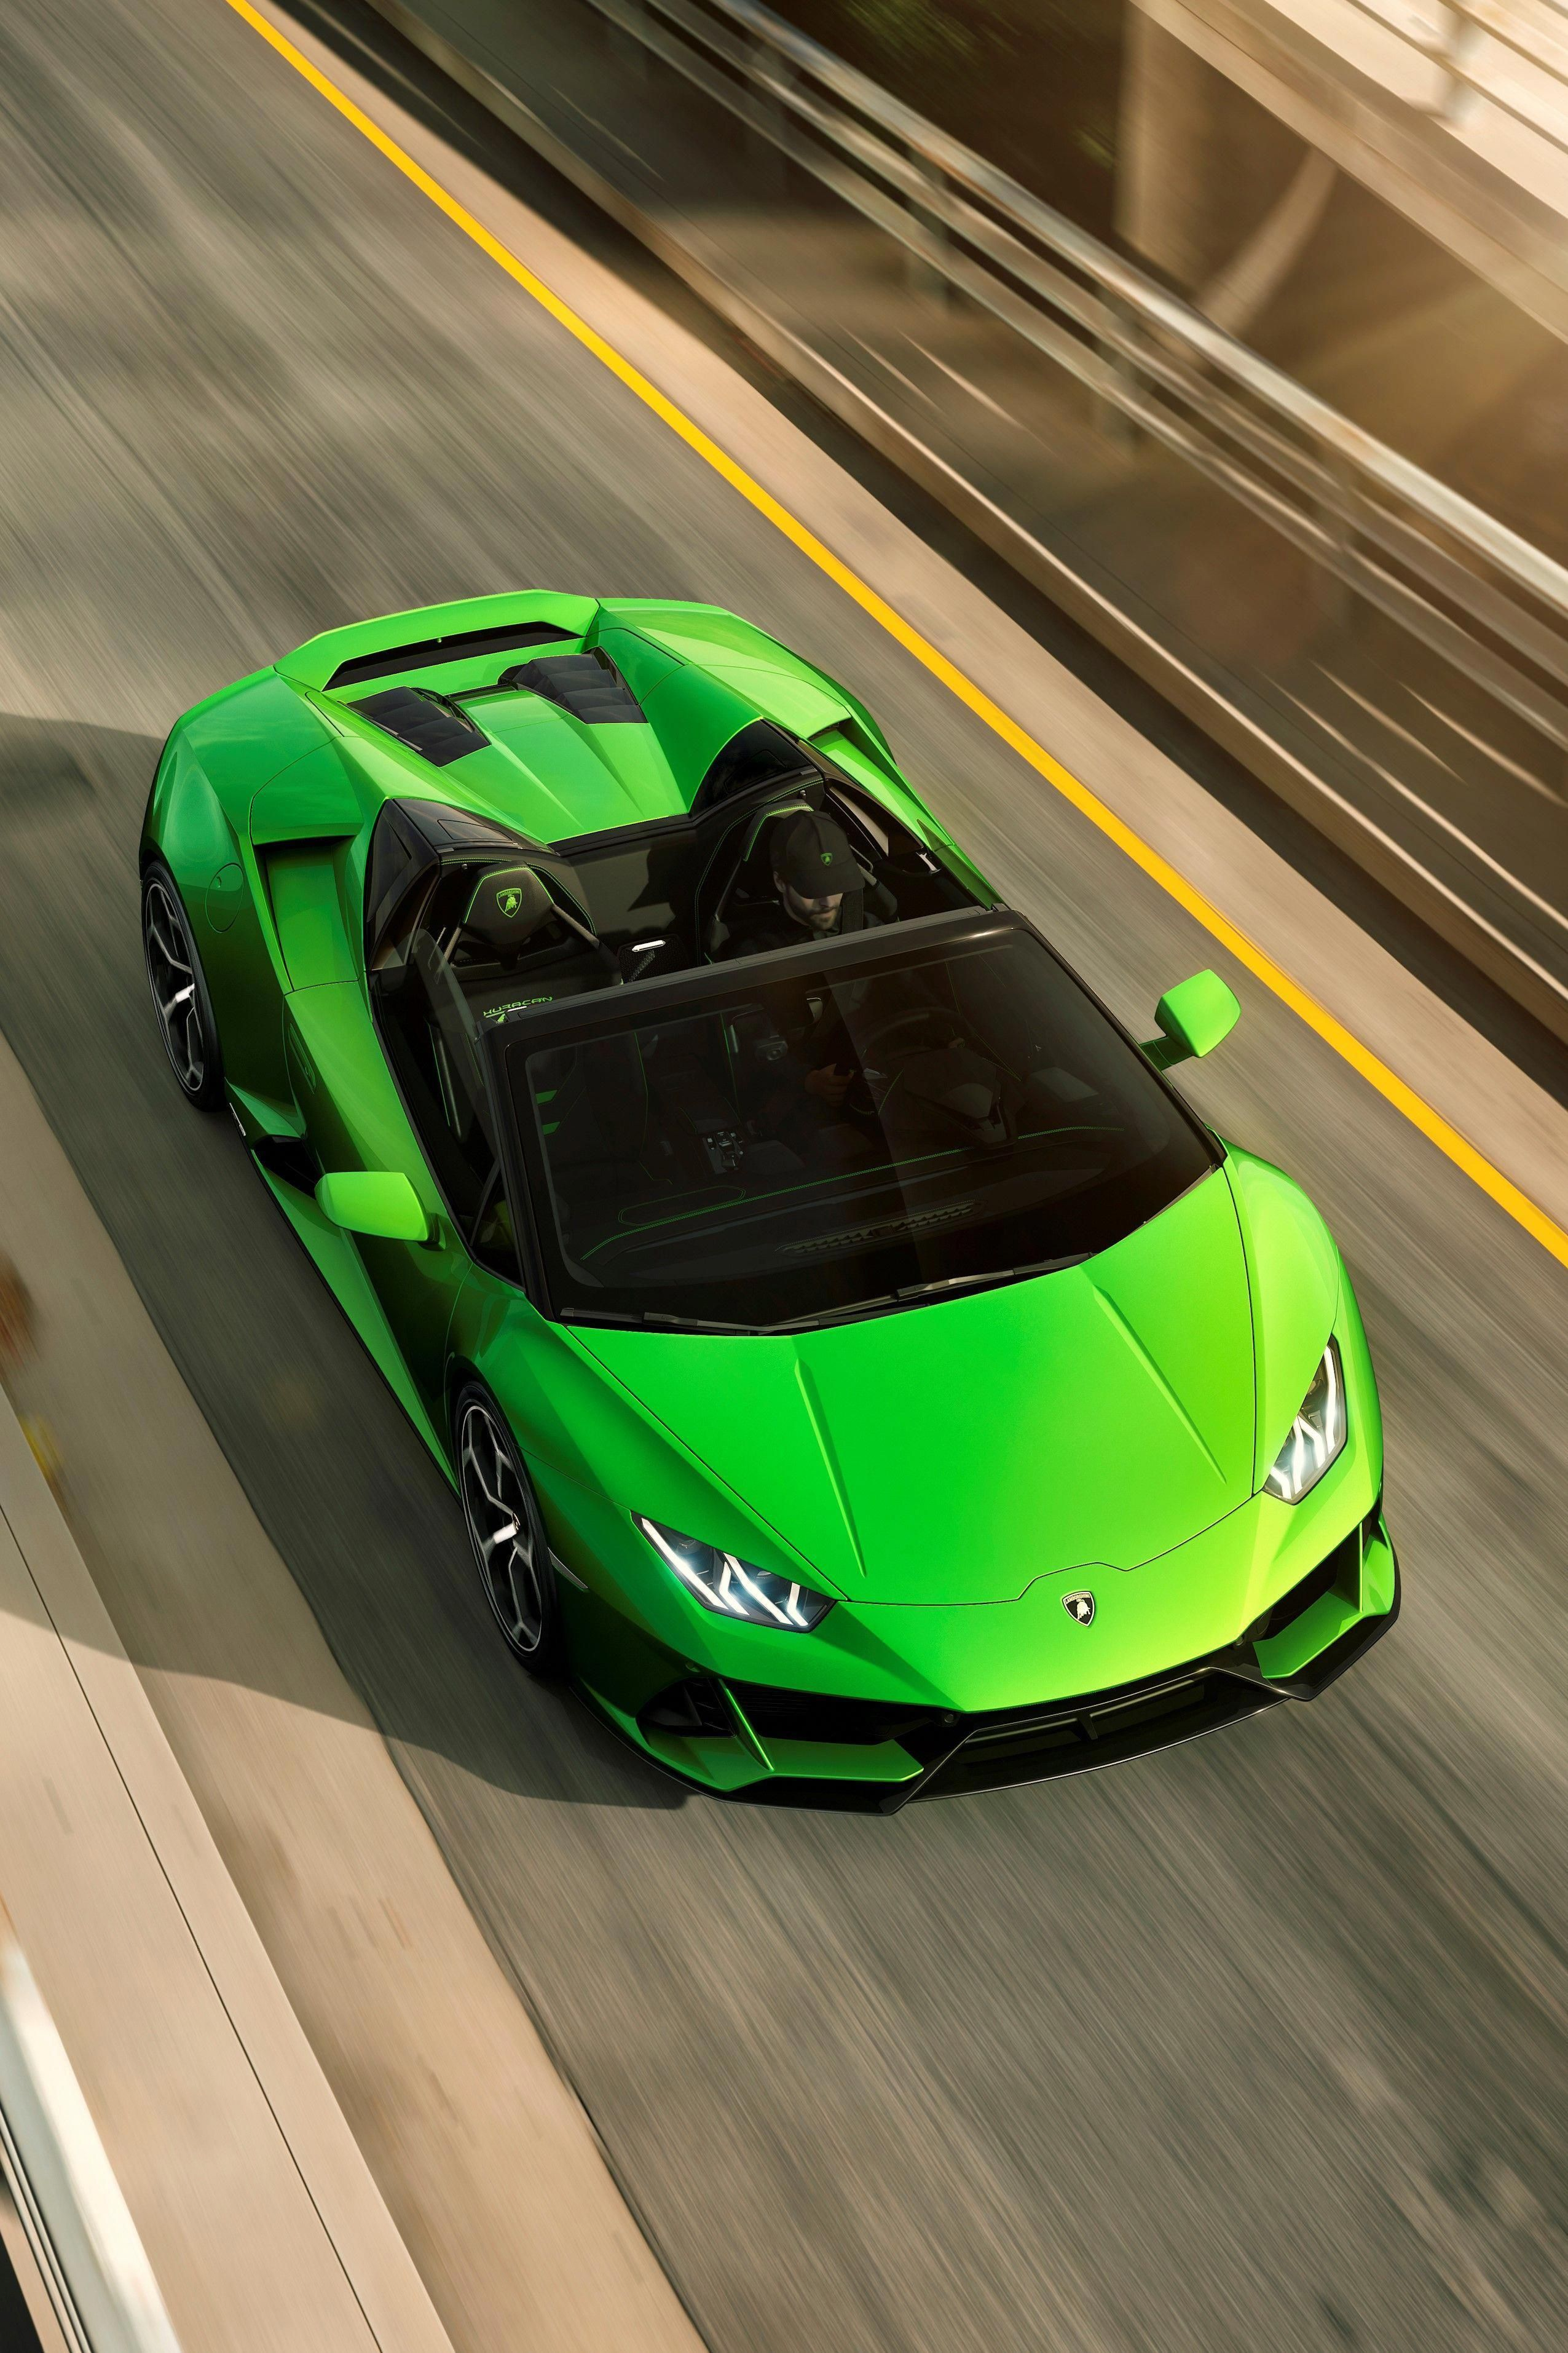 Quality Engineering And Sleek Style This Lamborghini Has Both Click To Find Out More Supercar Cars L Lamborghini Cars Lamborghini Huracan Sports Cars